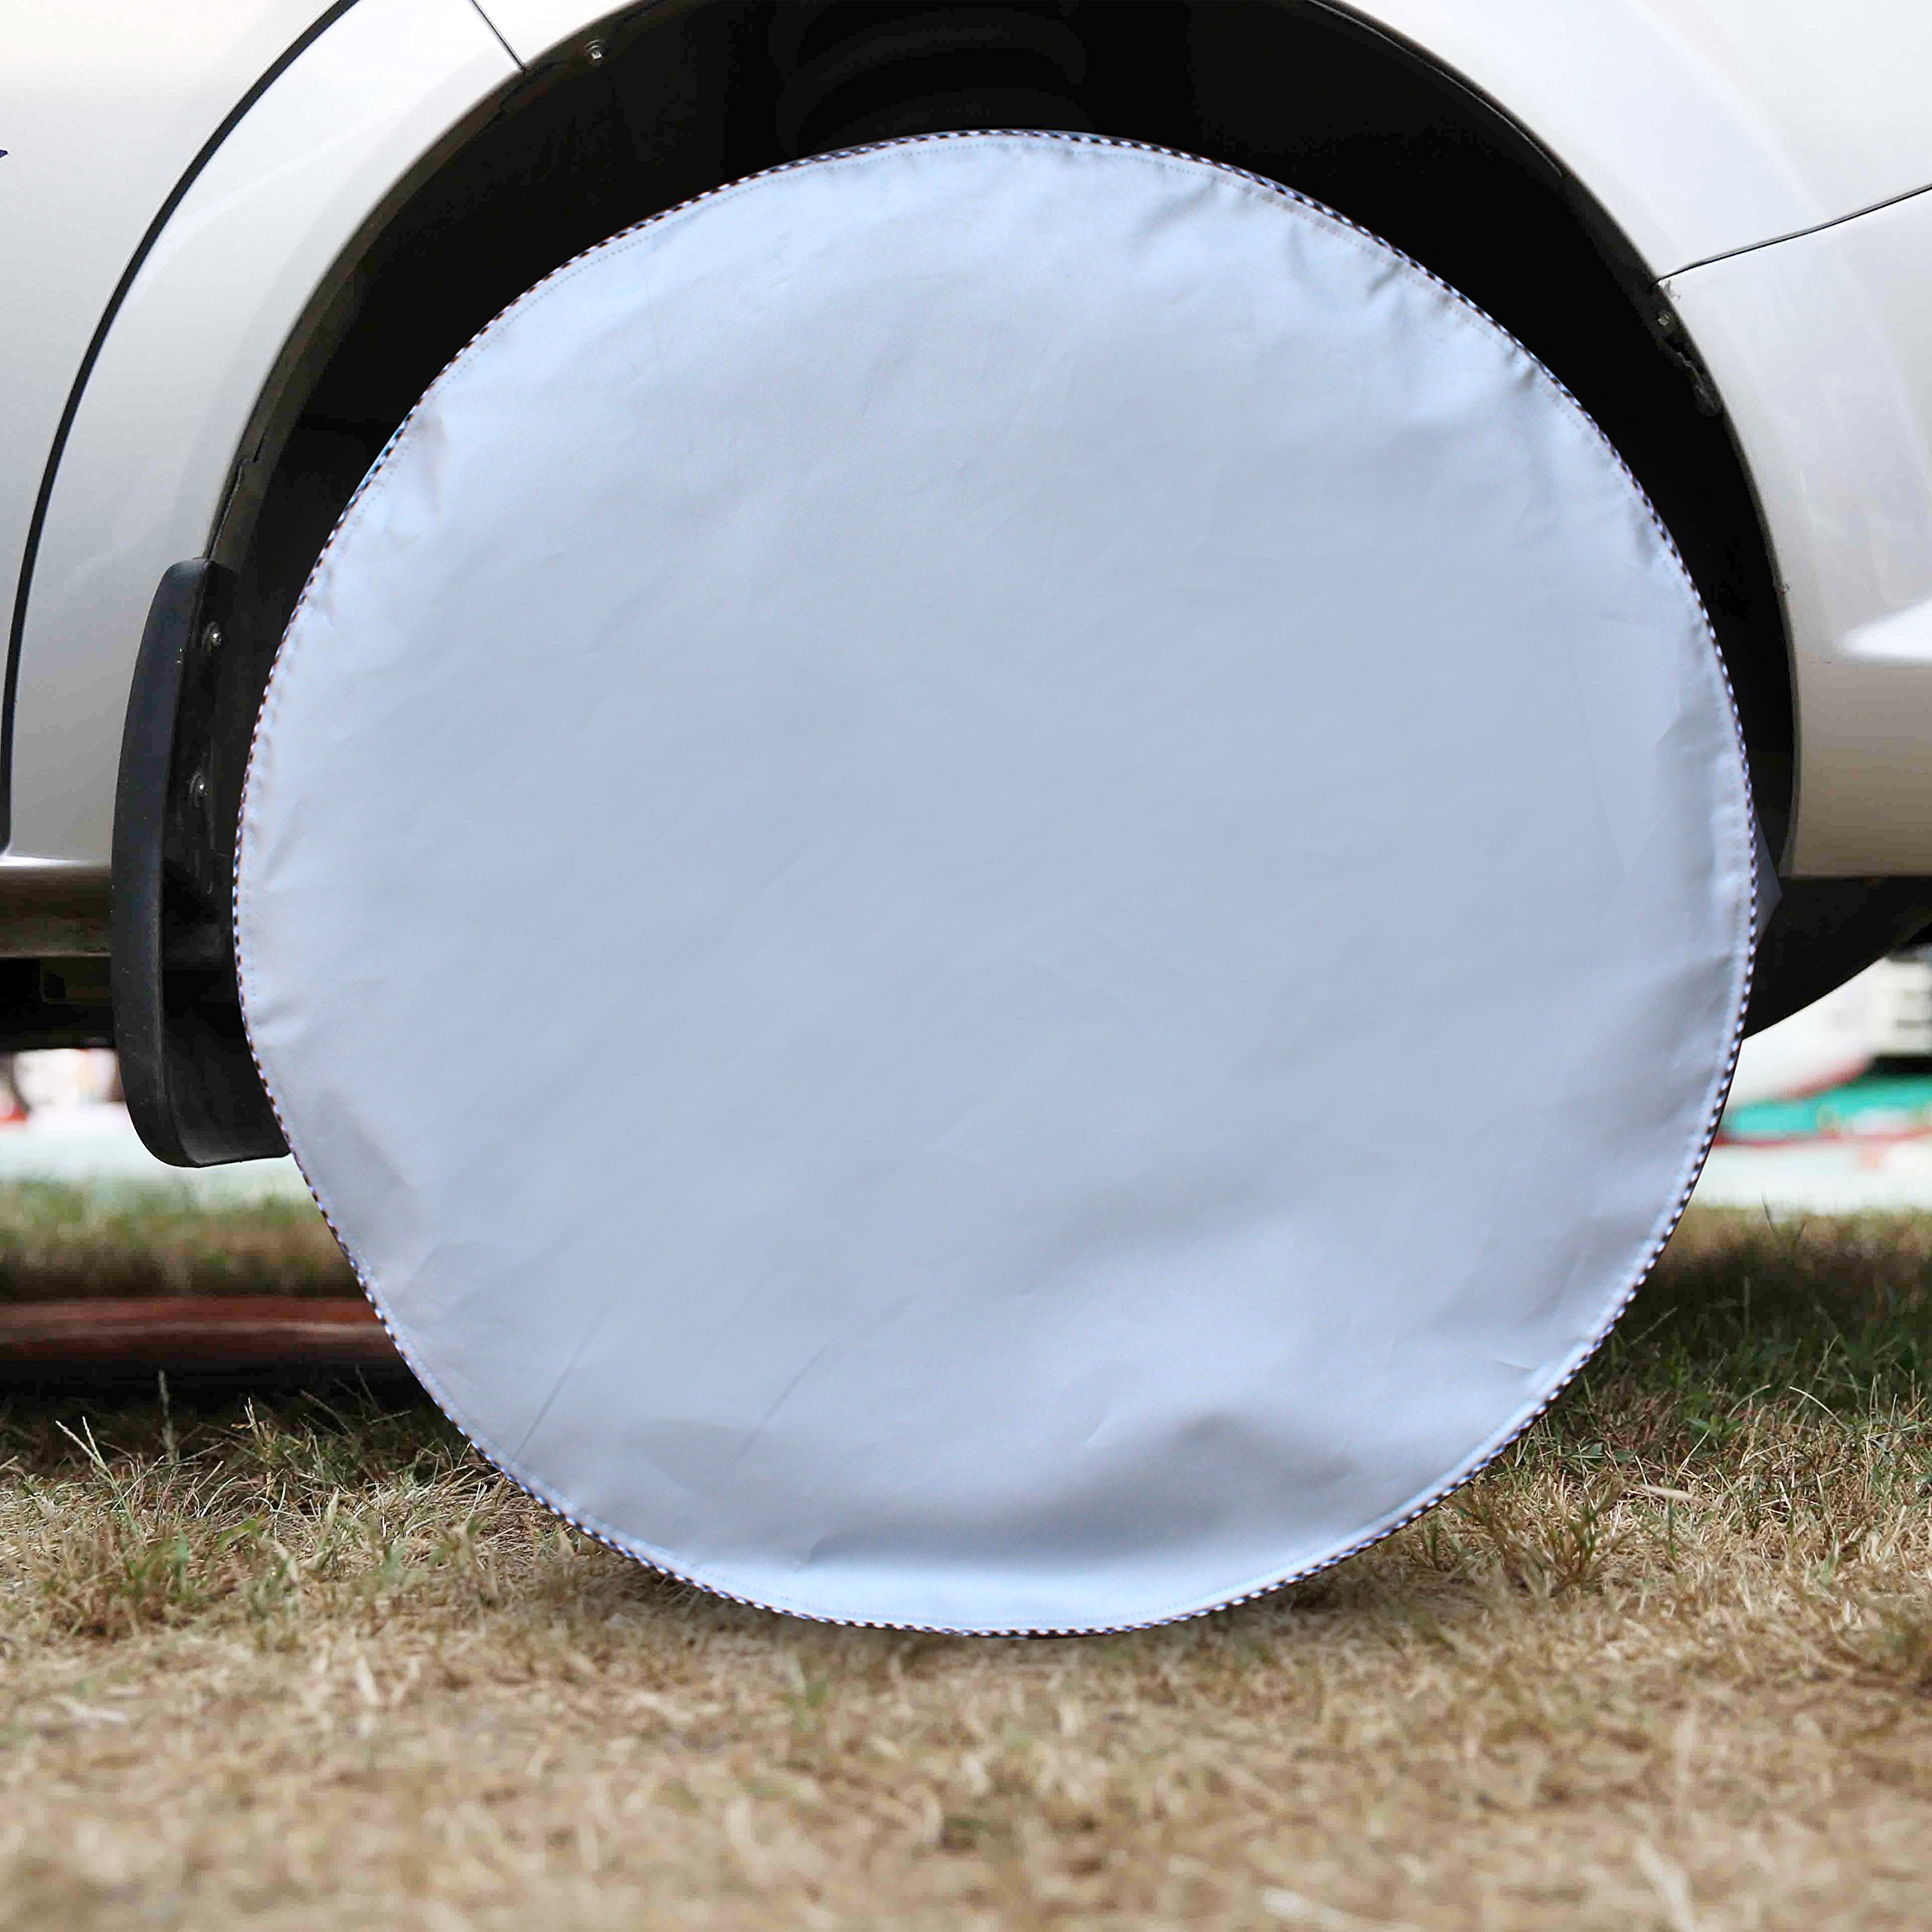 Mr.You Tire Covers For RV Auto Truck Car Camper Trailer Waterproof Sun-proof Fits 24'' to 26'' Tire Diameters 5 YR Warranty Silver 4 Pack by Mr.You (Image #3)